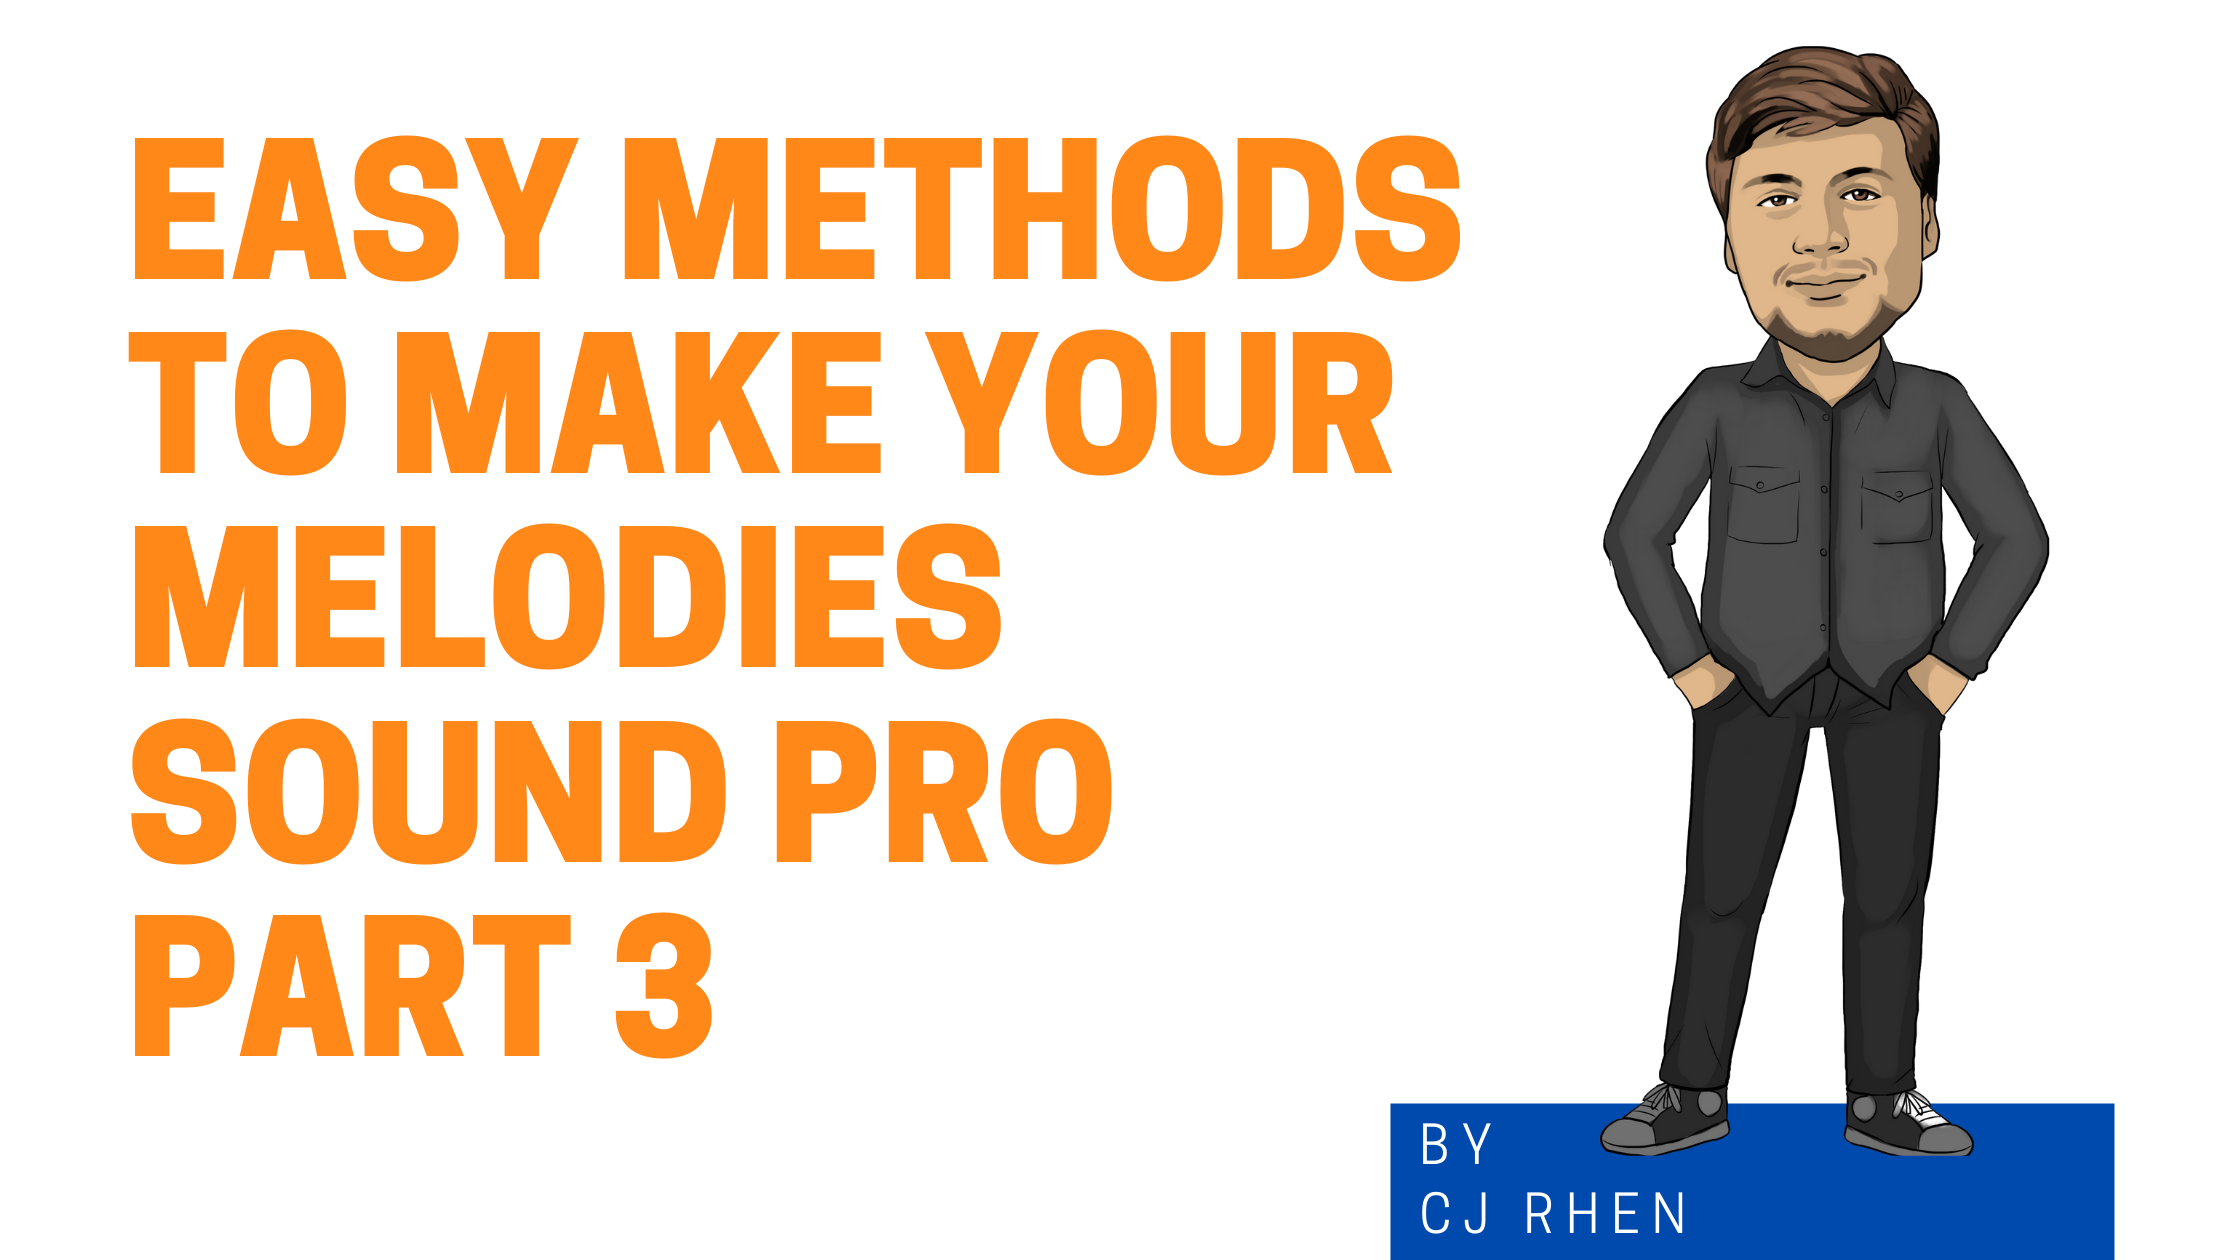 Easy Methods to Make Your Melodies Sound Pro 3 graphic with cartoon version of Cj